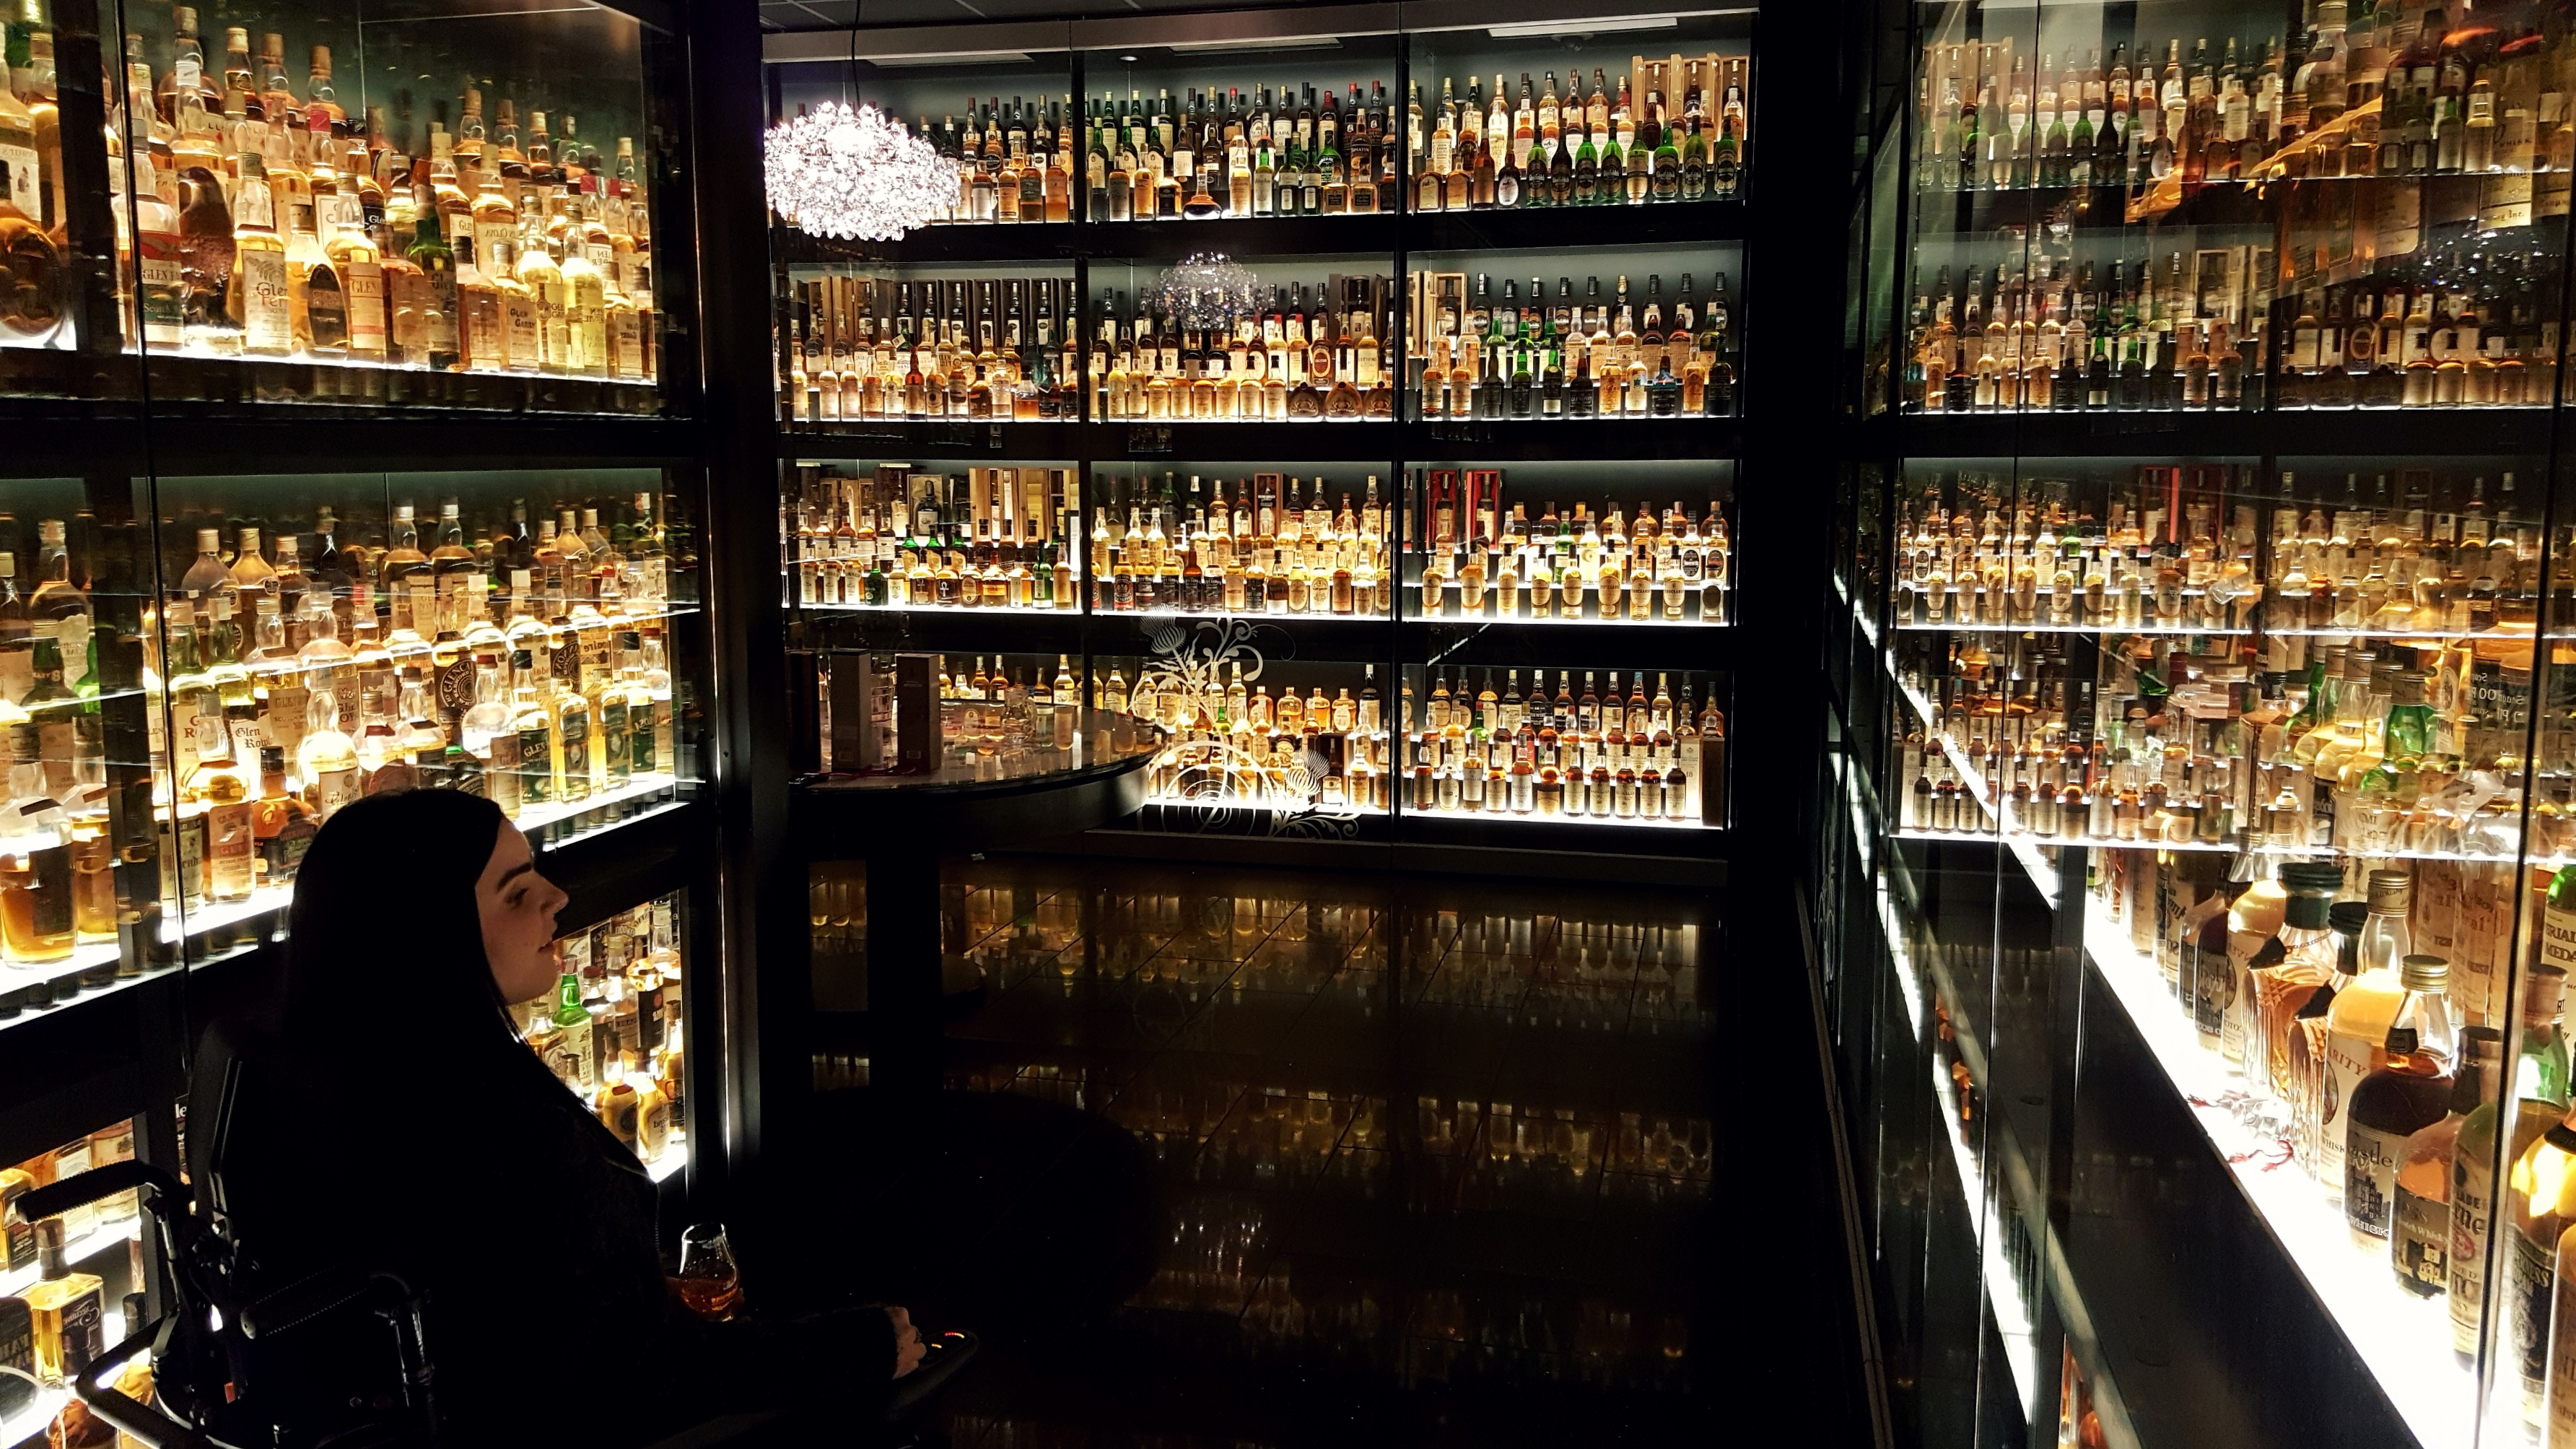 An Accessible Tour of The Scotch Whisky Experience